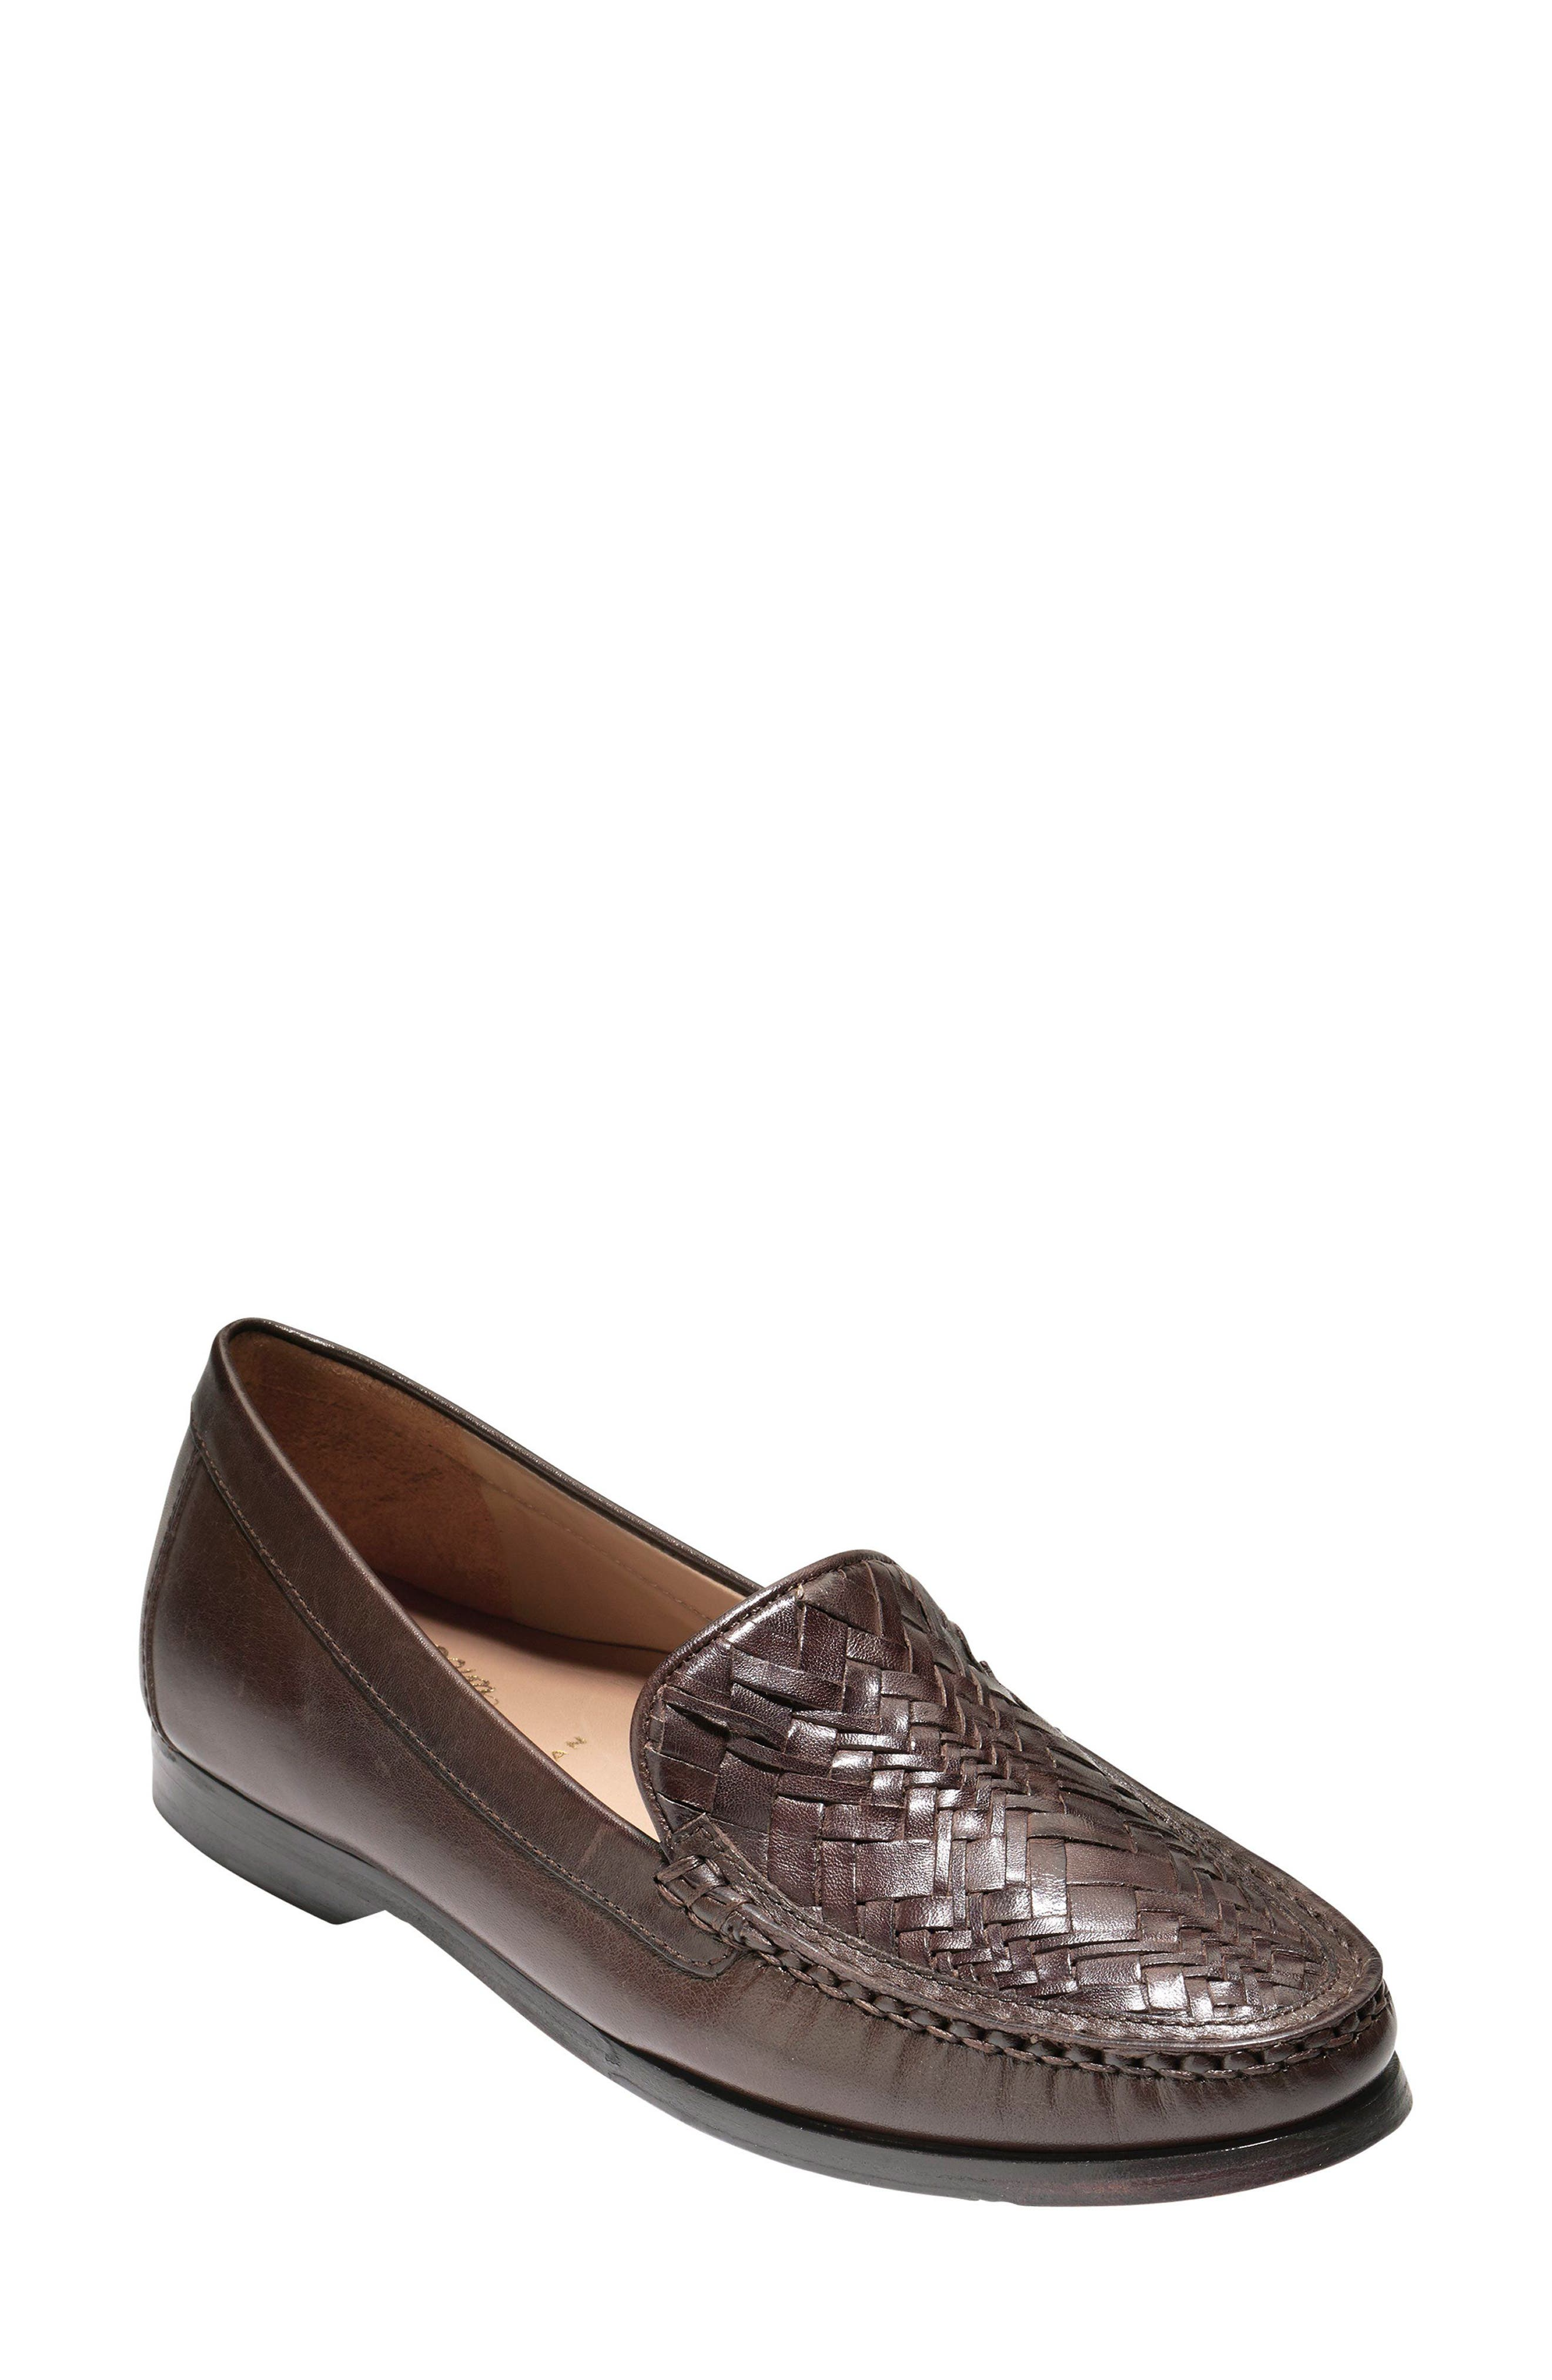 Pinch Genevieve Loafer,                         Main,                         color, Chestnut Leather